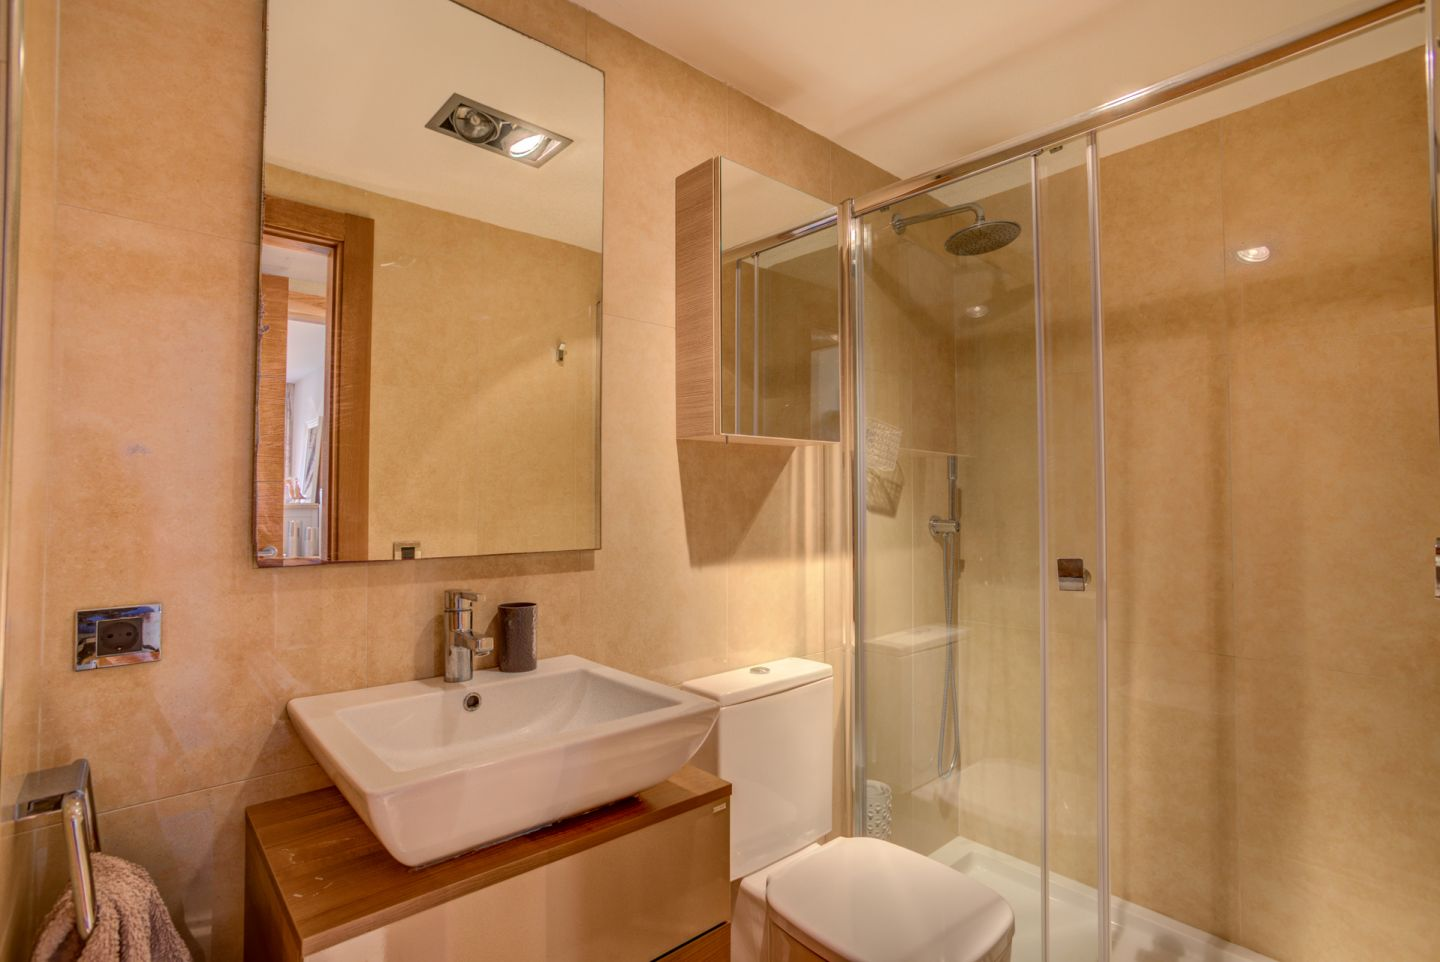 3 Bed Apartment for sale in Puerto Pollensa 12